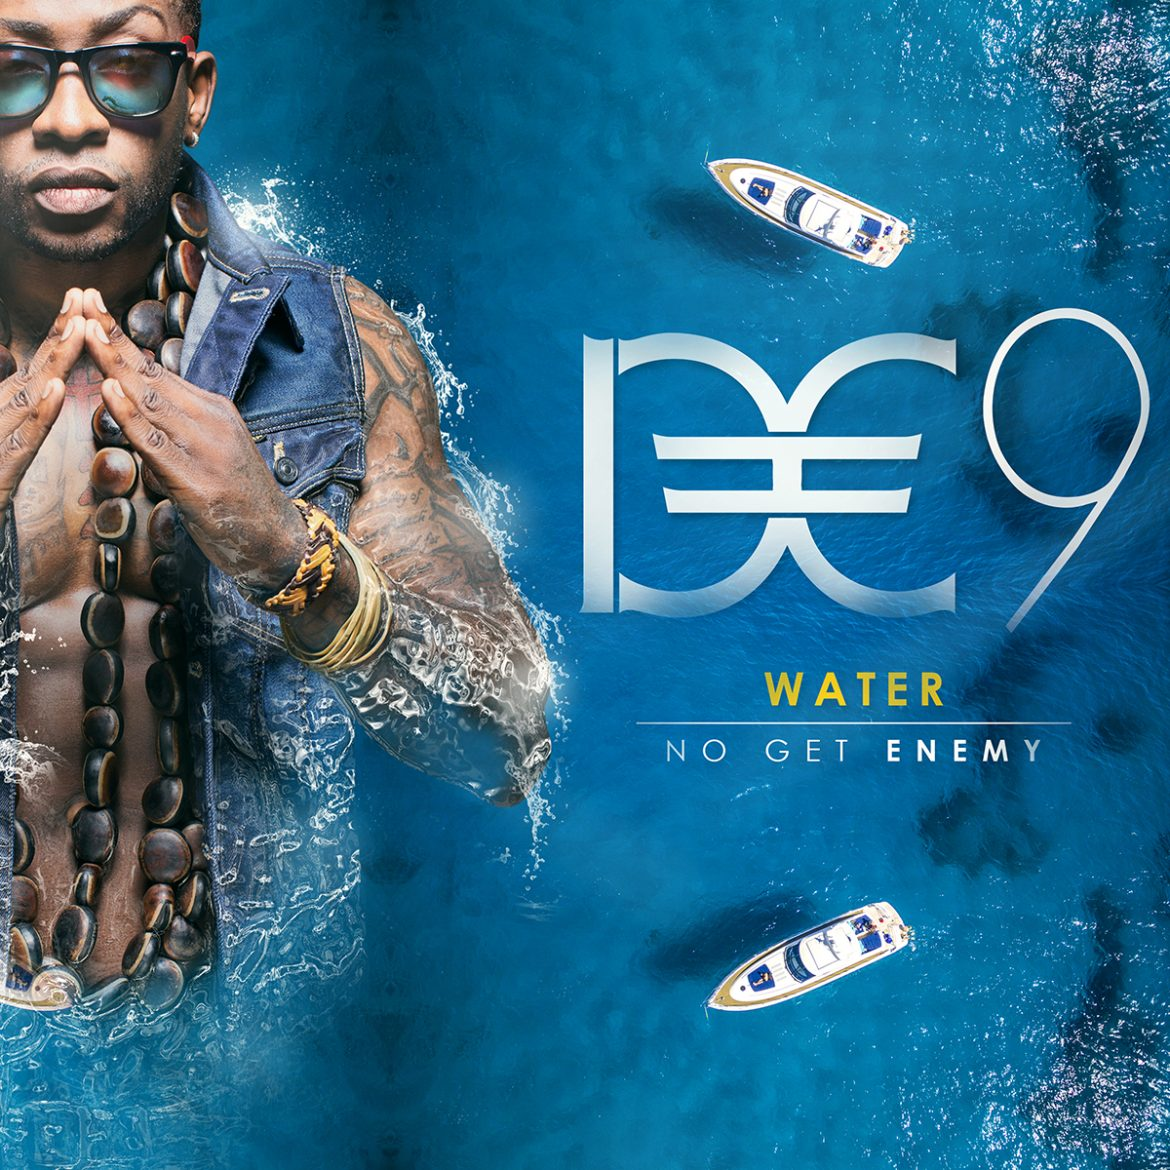 D€9 - Water (no get enemy)